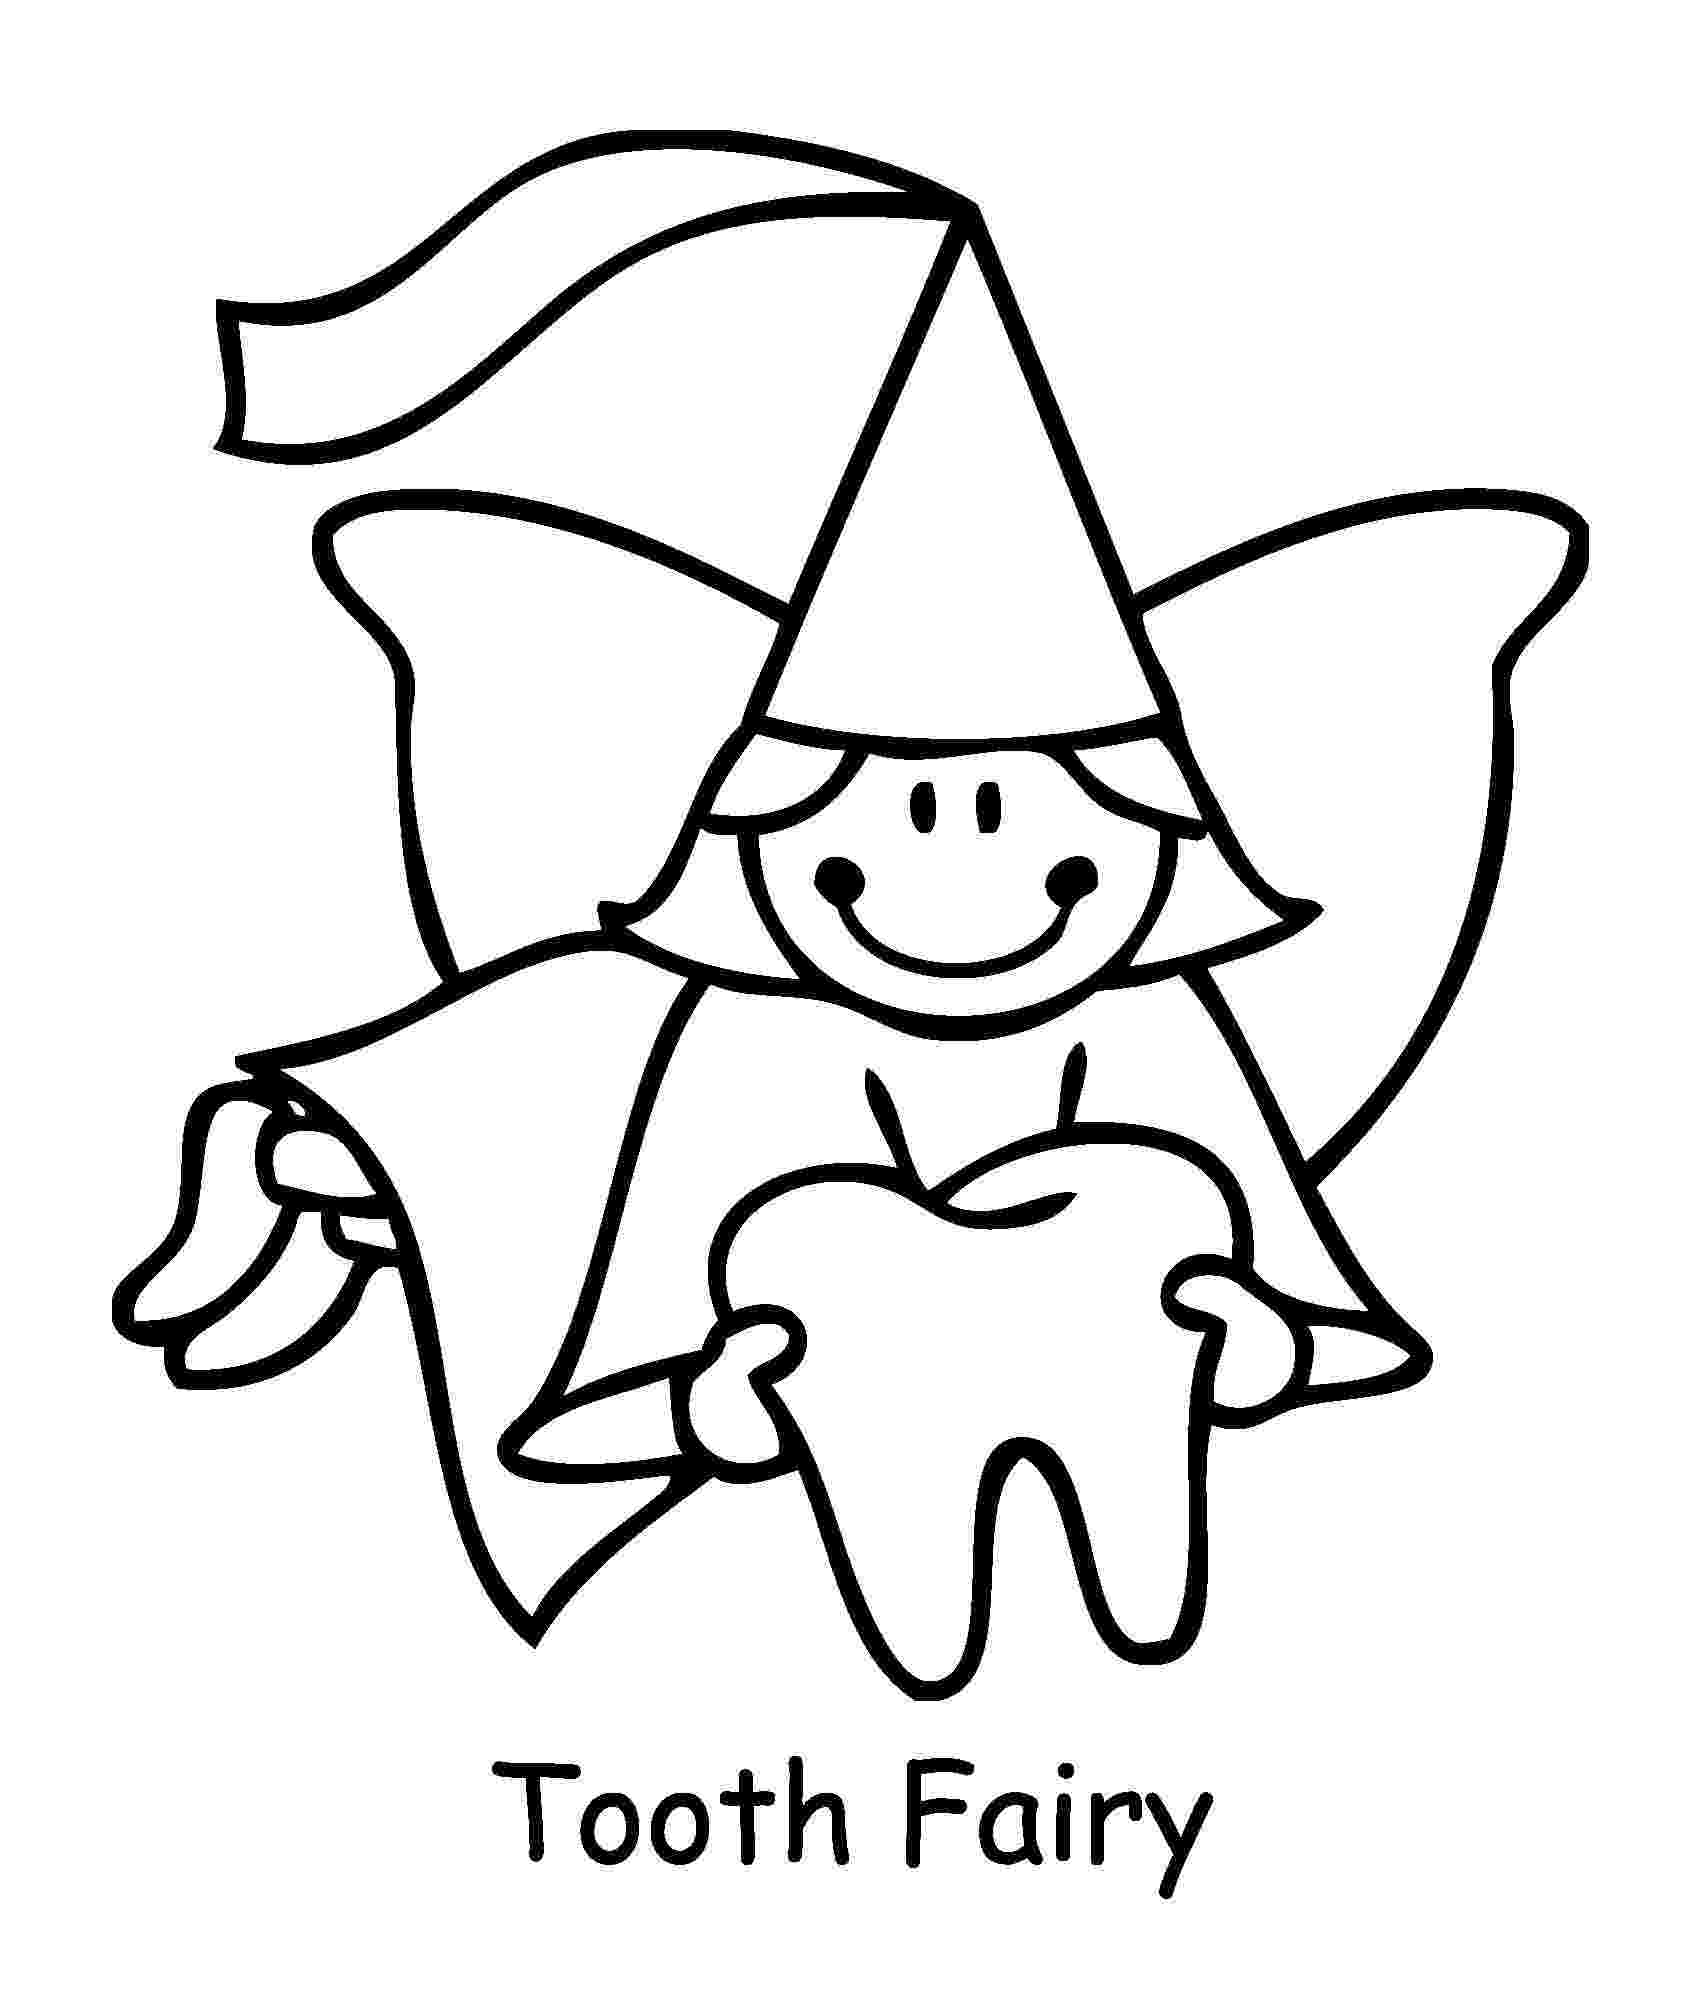 tooth fairy pictures to color tooth fairy coloring pages to download and print for free pictures to color fairy tooth